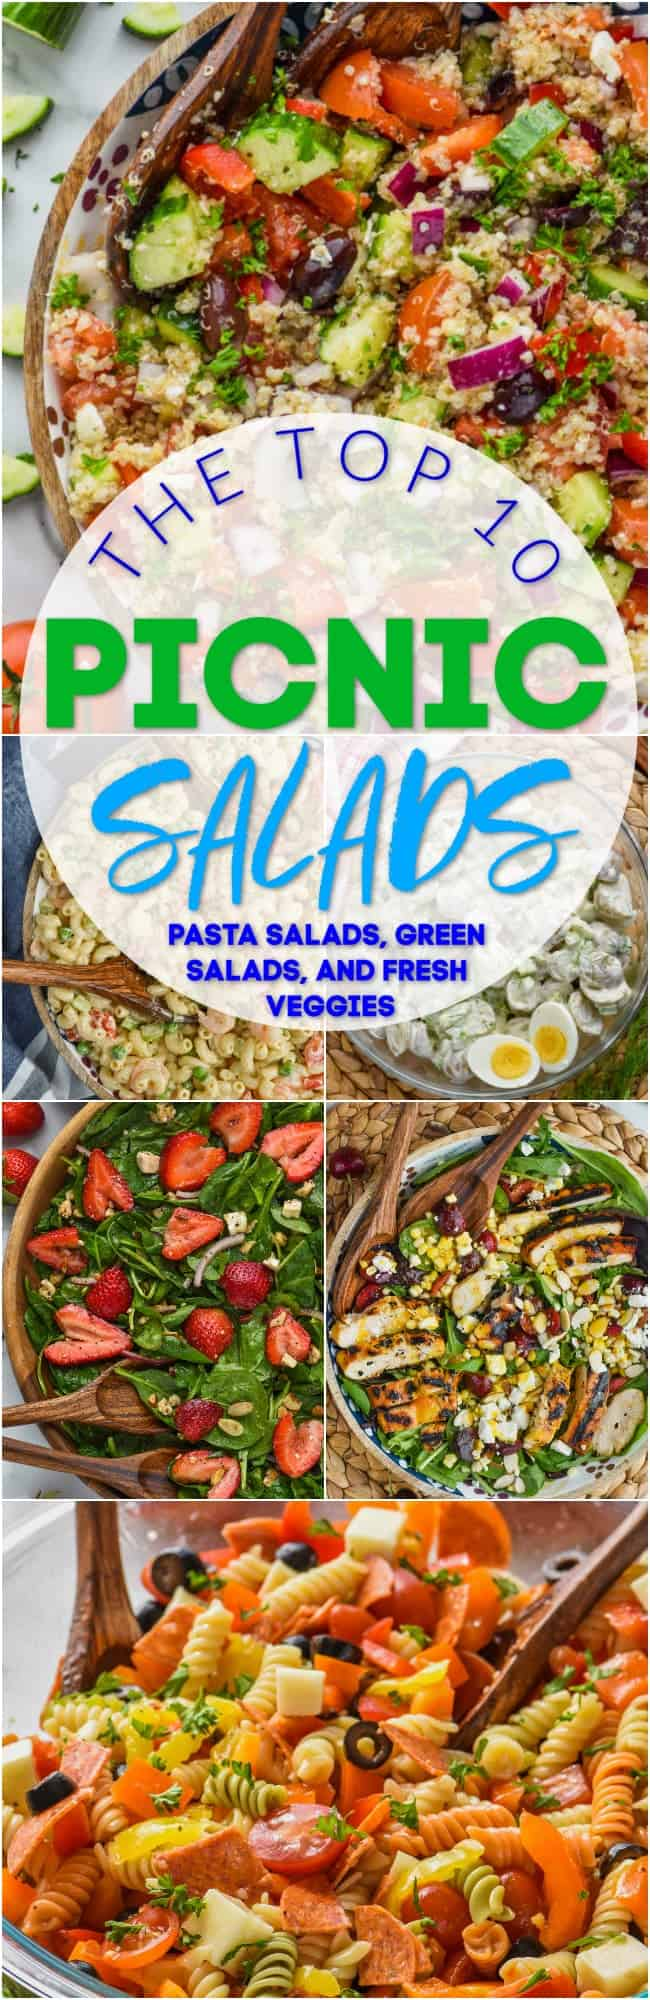 Top 10 Picnic Salads